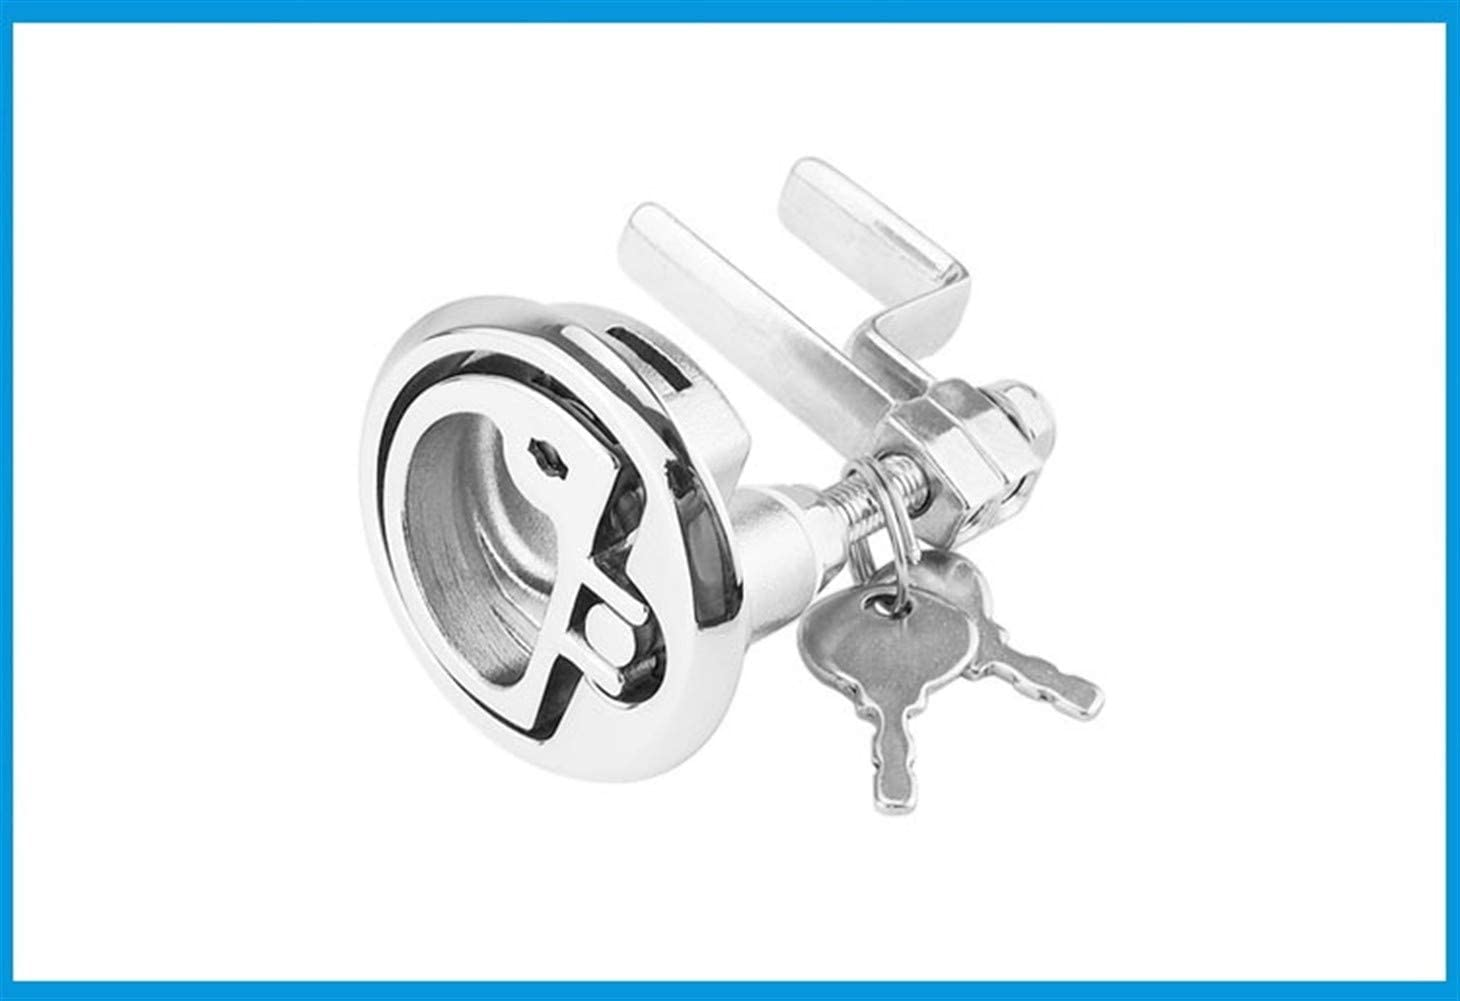 Nologo Durable Practical Marine Grade Stainless Steel 316 Cam Latch Flush Pull Deck Hatch Lift Handle with Key Boat Hardware Accessories